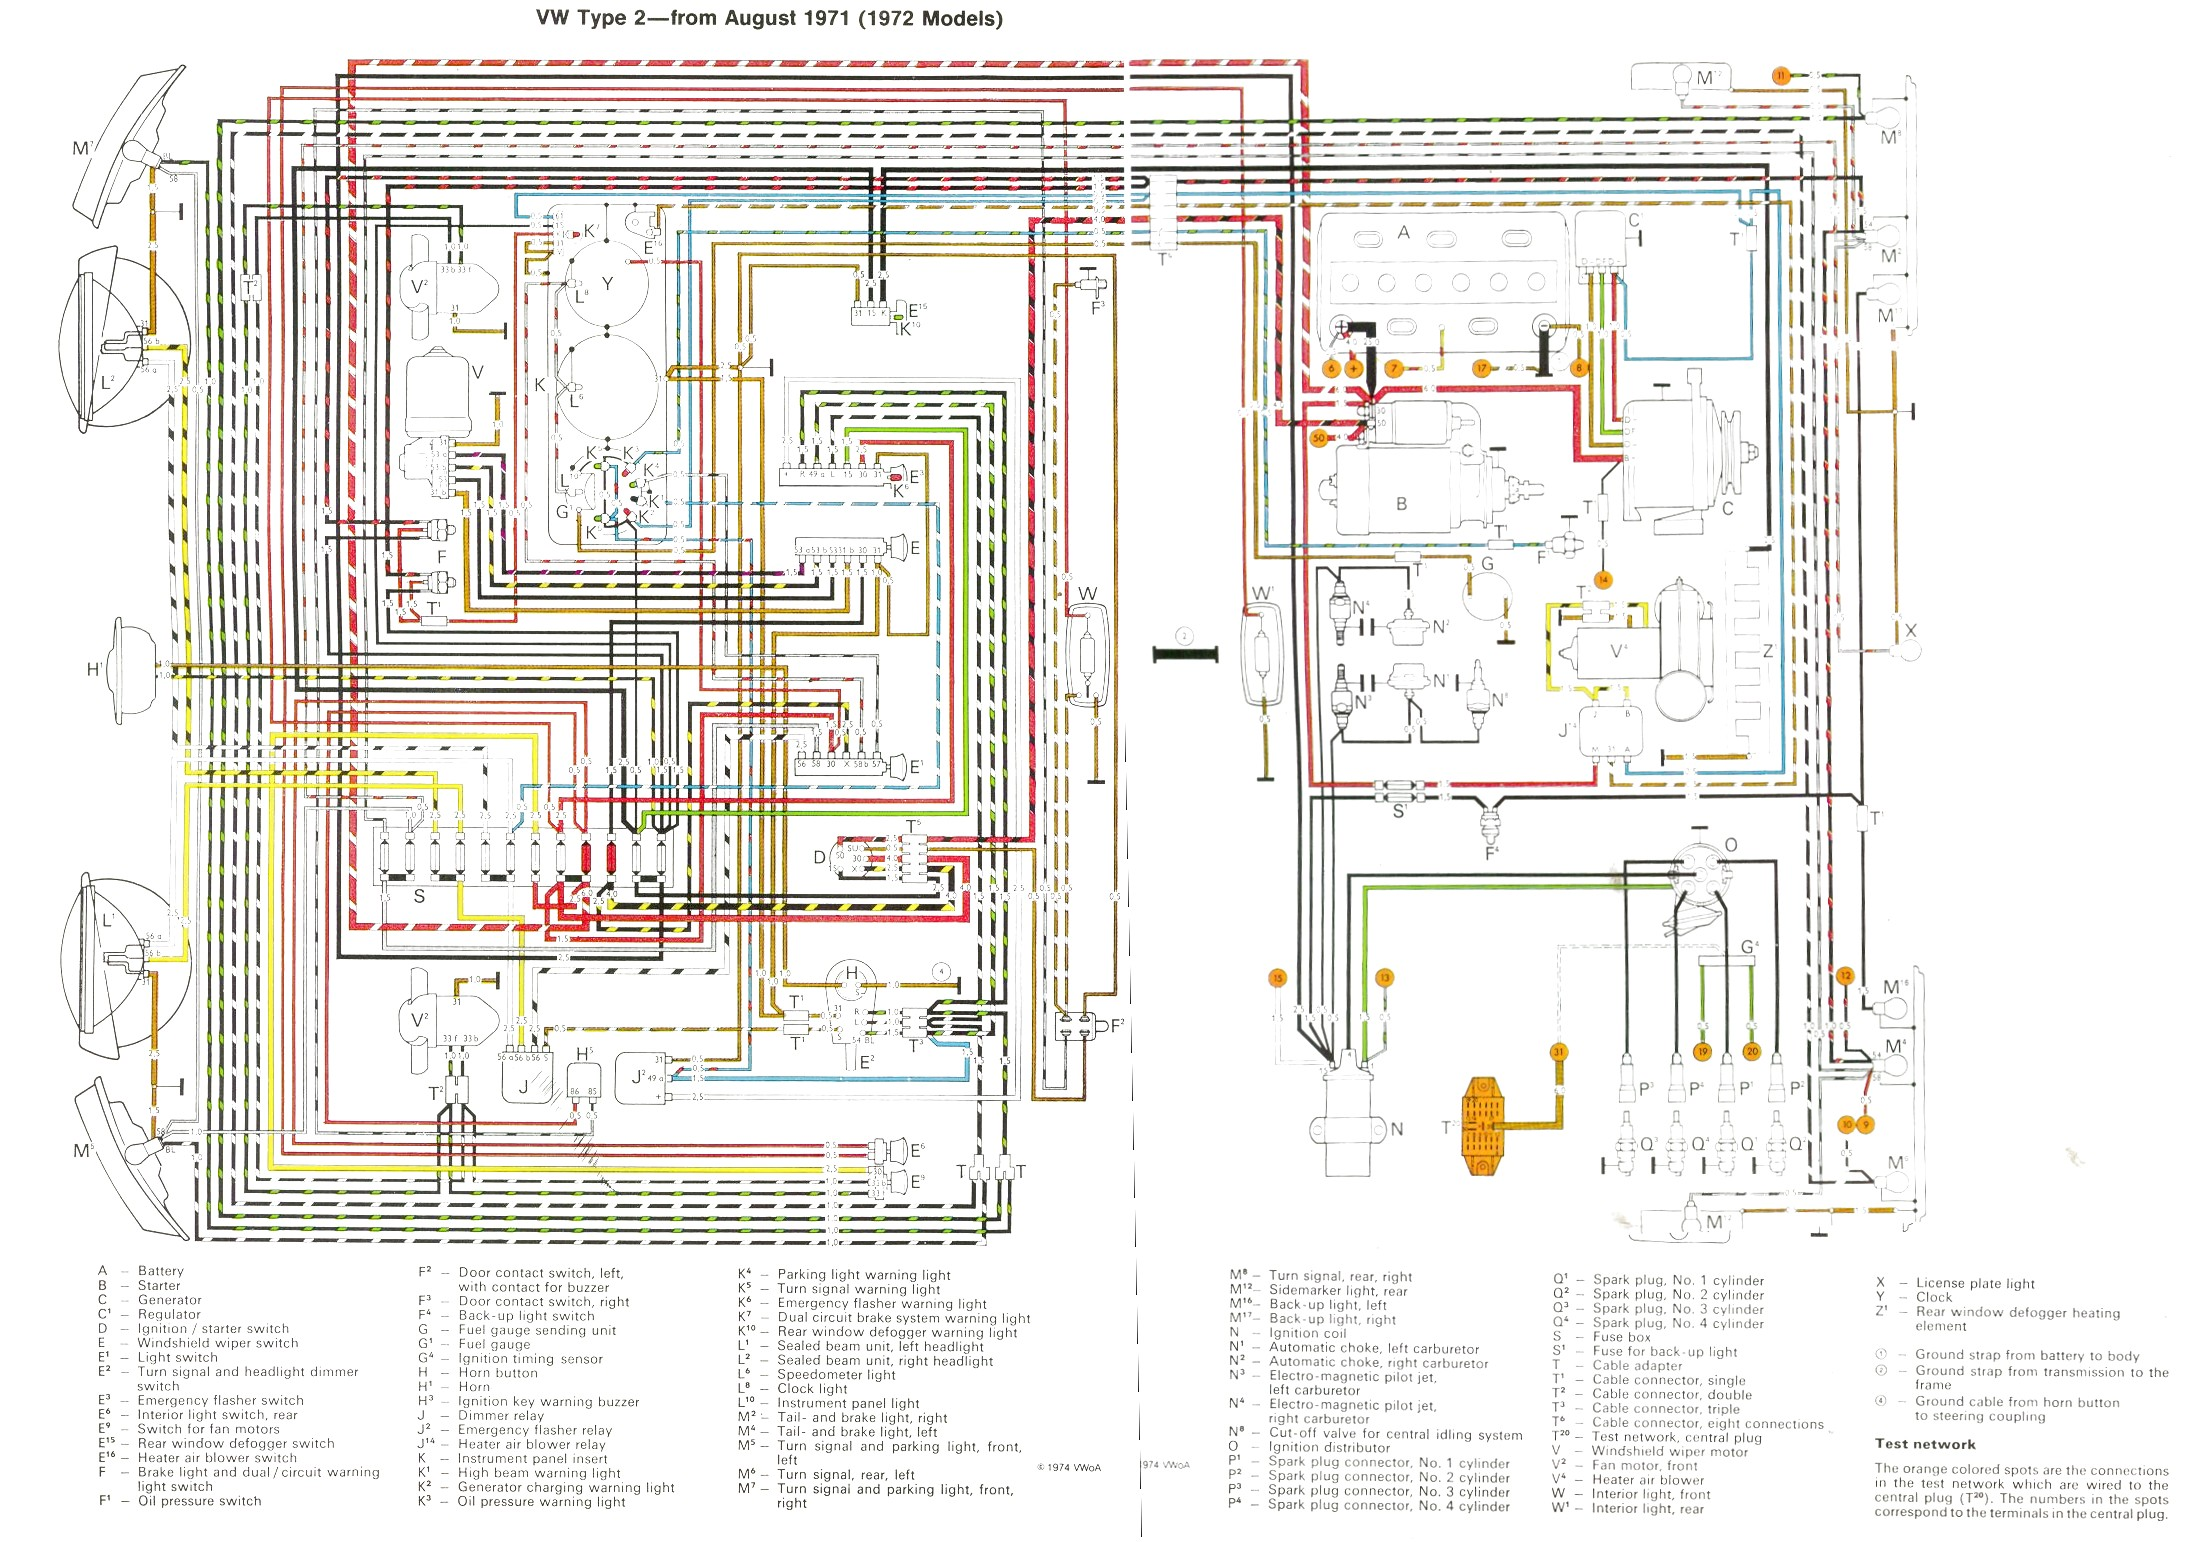 Drafts sa system backup3000 moreover Ccgx start in addition Maretron moreover Tech info 2 further Fiber Optic Pool Light Wiring Diagram. on ct wiring diagram